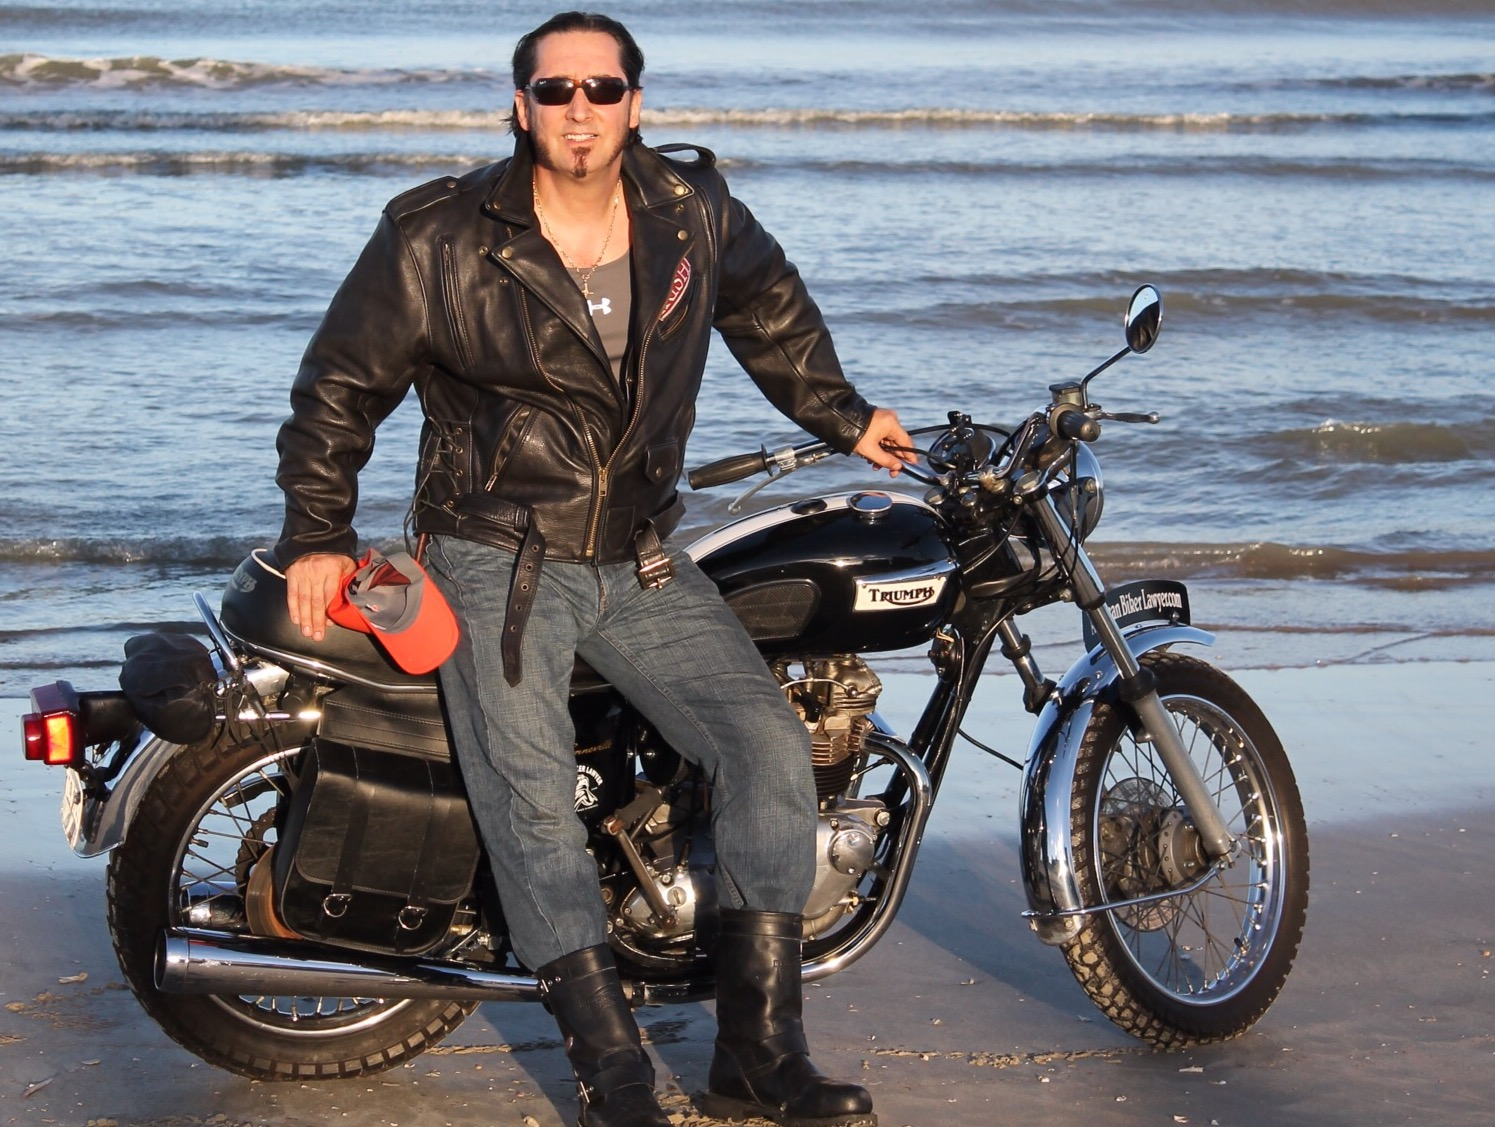 Steve on his '76 Bonny at Daytona Beach. He's owned this bike for over 35 years.